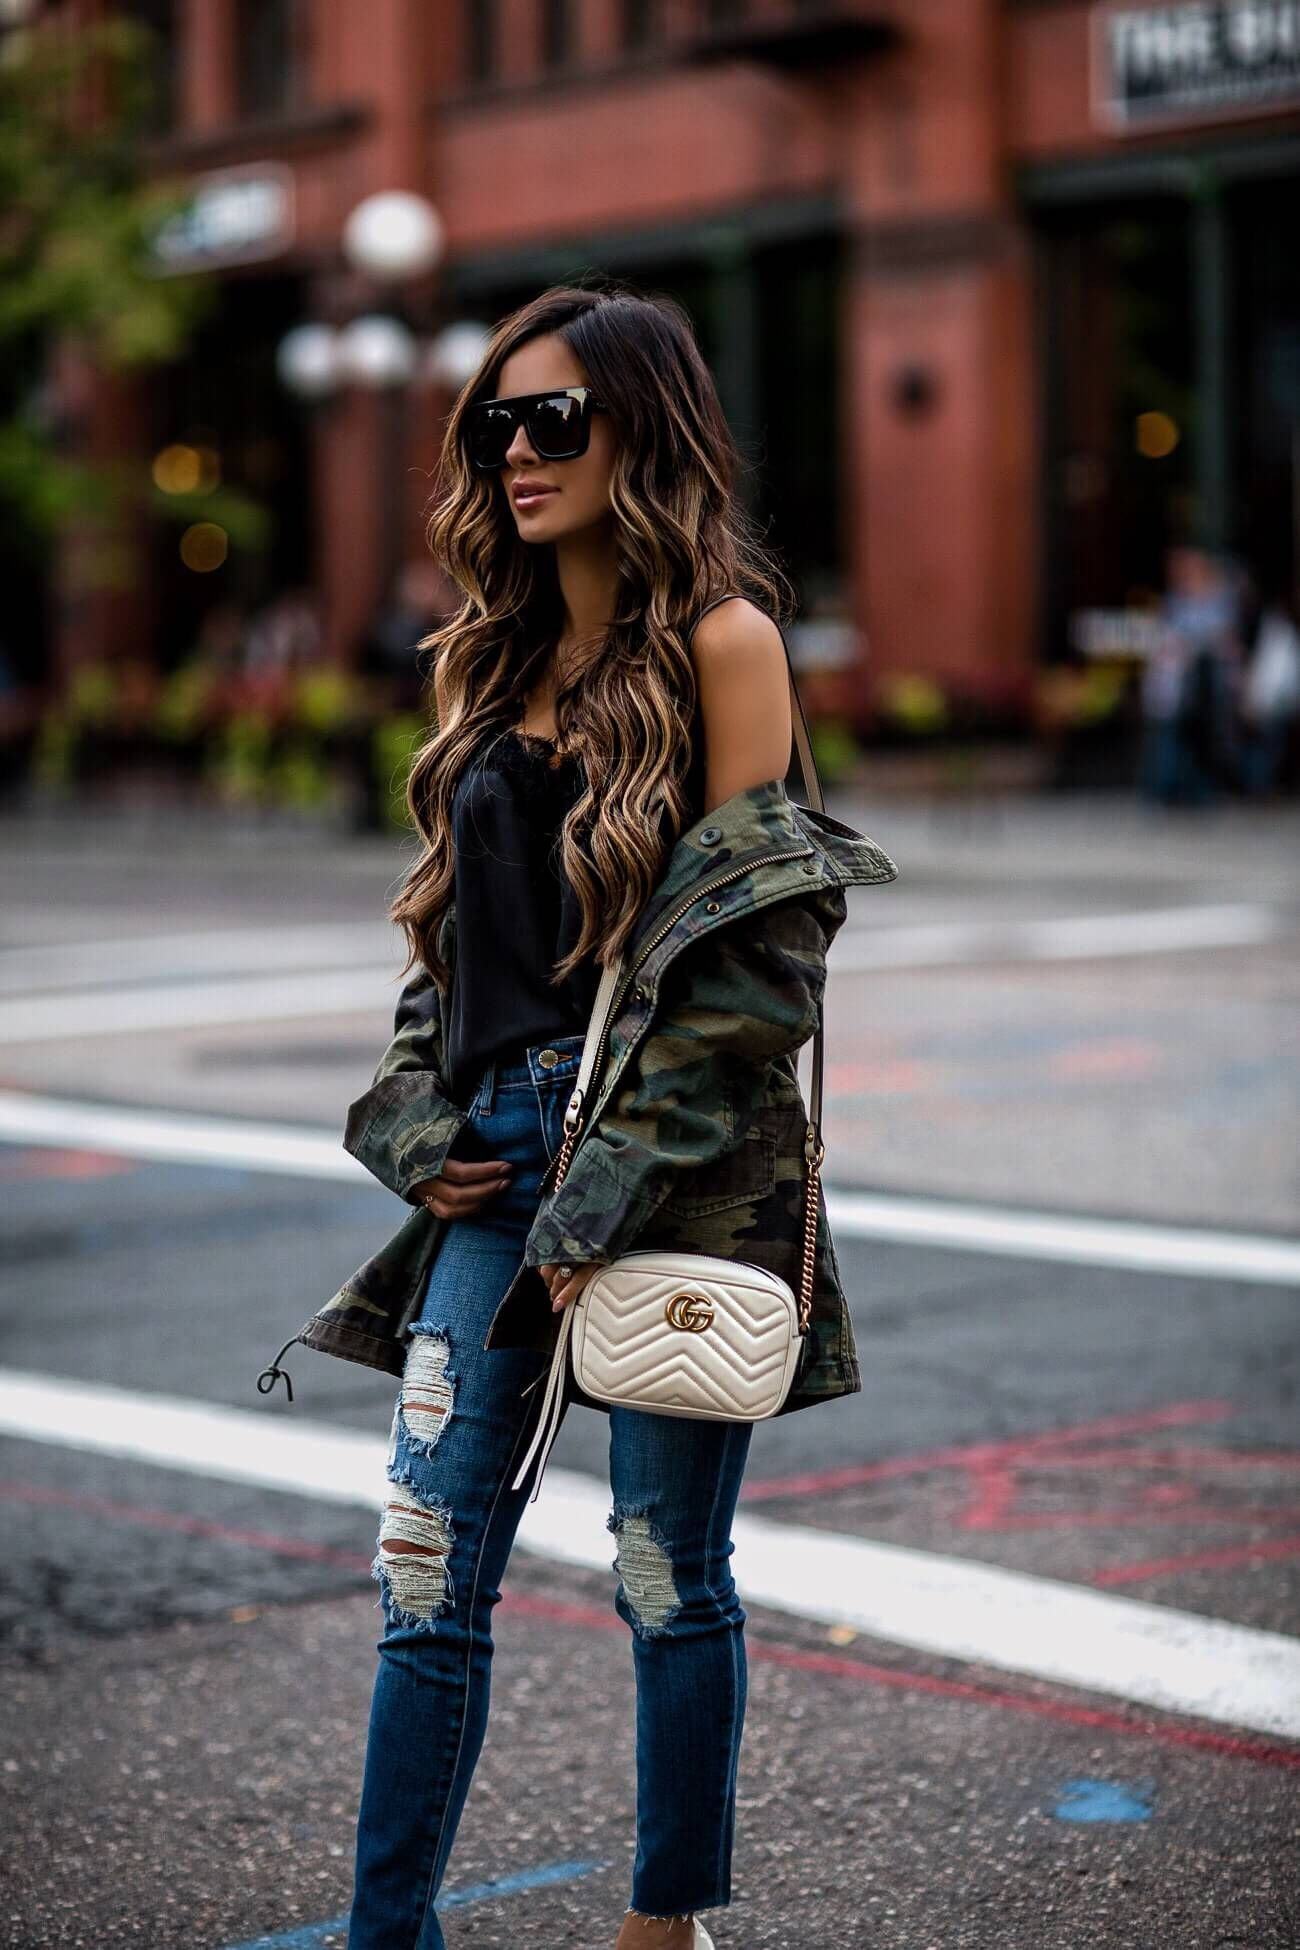 a3d54af09cfc mia mia mine wearing a camo jacket and a gucci marmont white bag ...